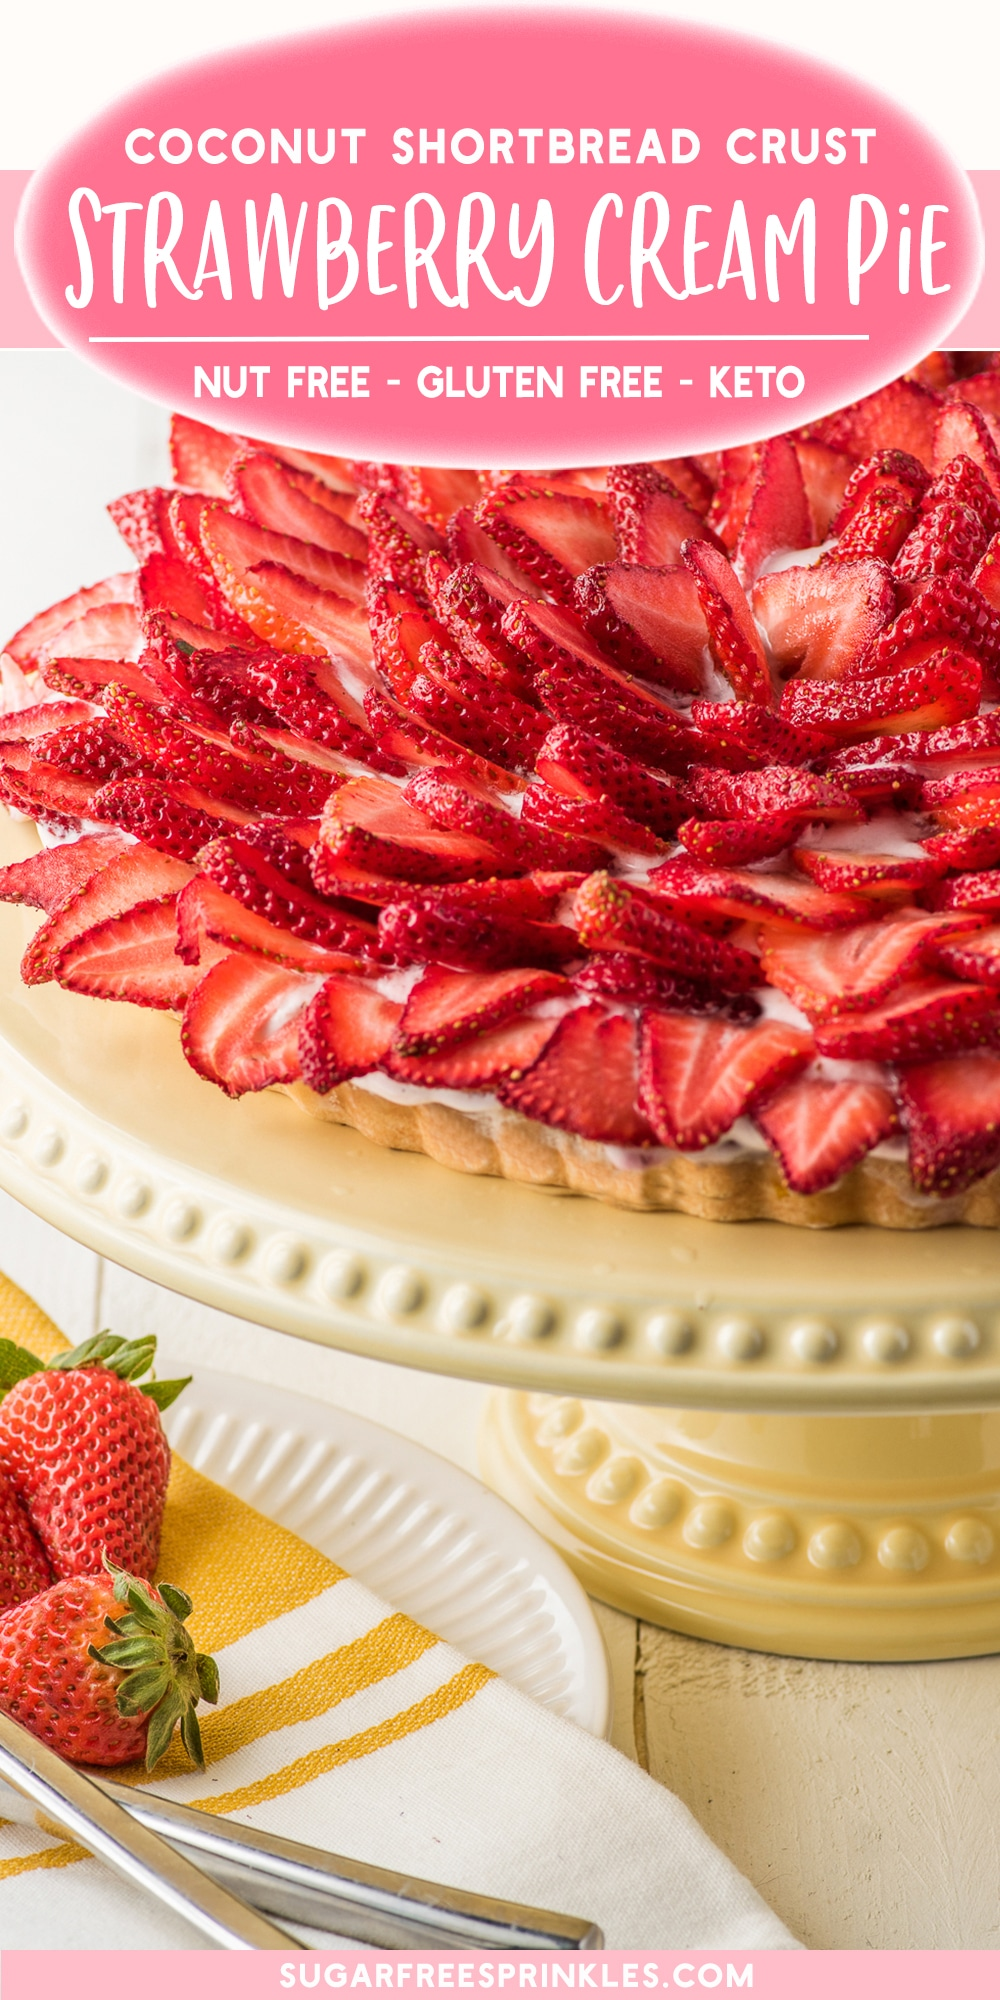 A low carb strawberry cream pie with a coconut flour crust. This sugar-free cream pie only takes 30 minutes to make and a few hours to set in the fridge. The coconut flour crust takes only 10 minutes to bake, and the filling is no bake! A perfect keto dessert for a summer day. This low carb baking recipe is sugar-free, low carb, nut free, gluten free and keto friendly!